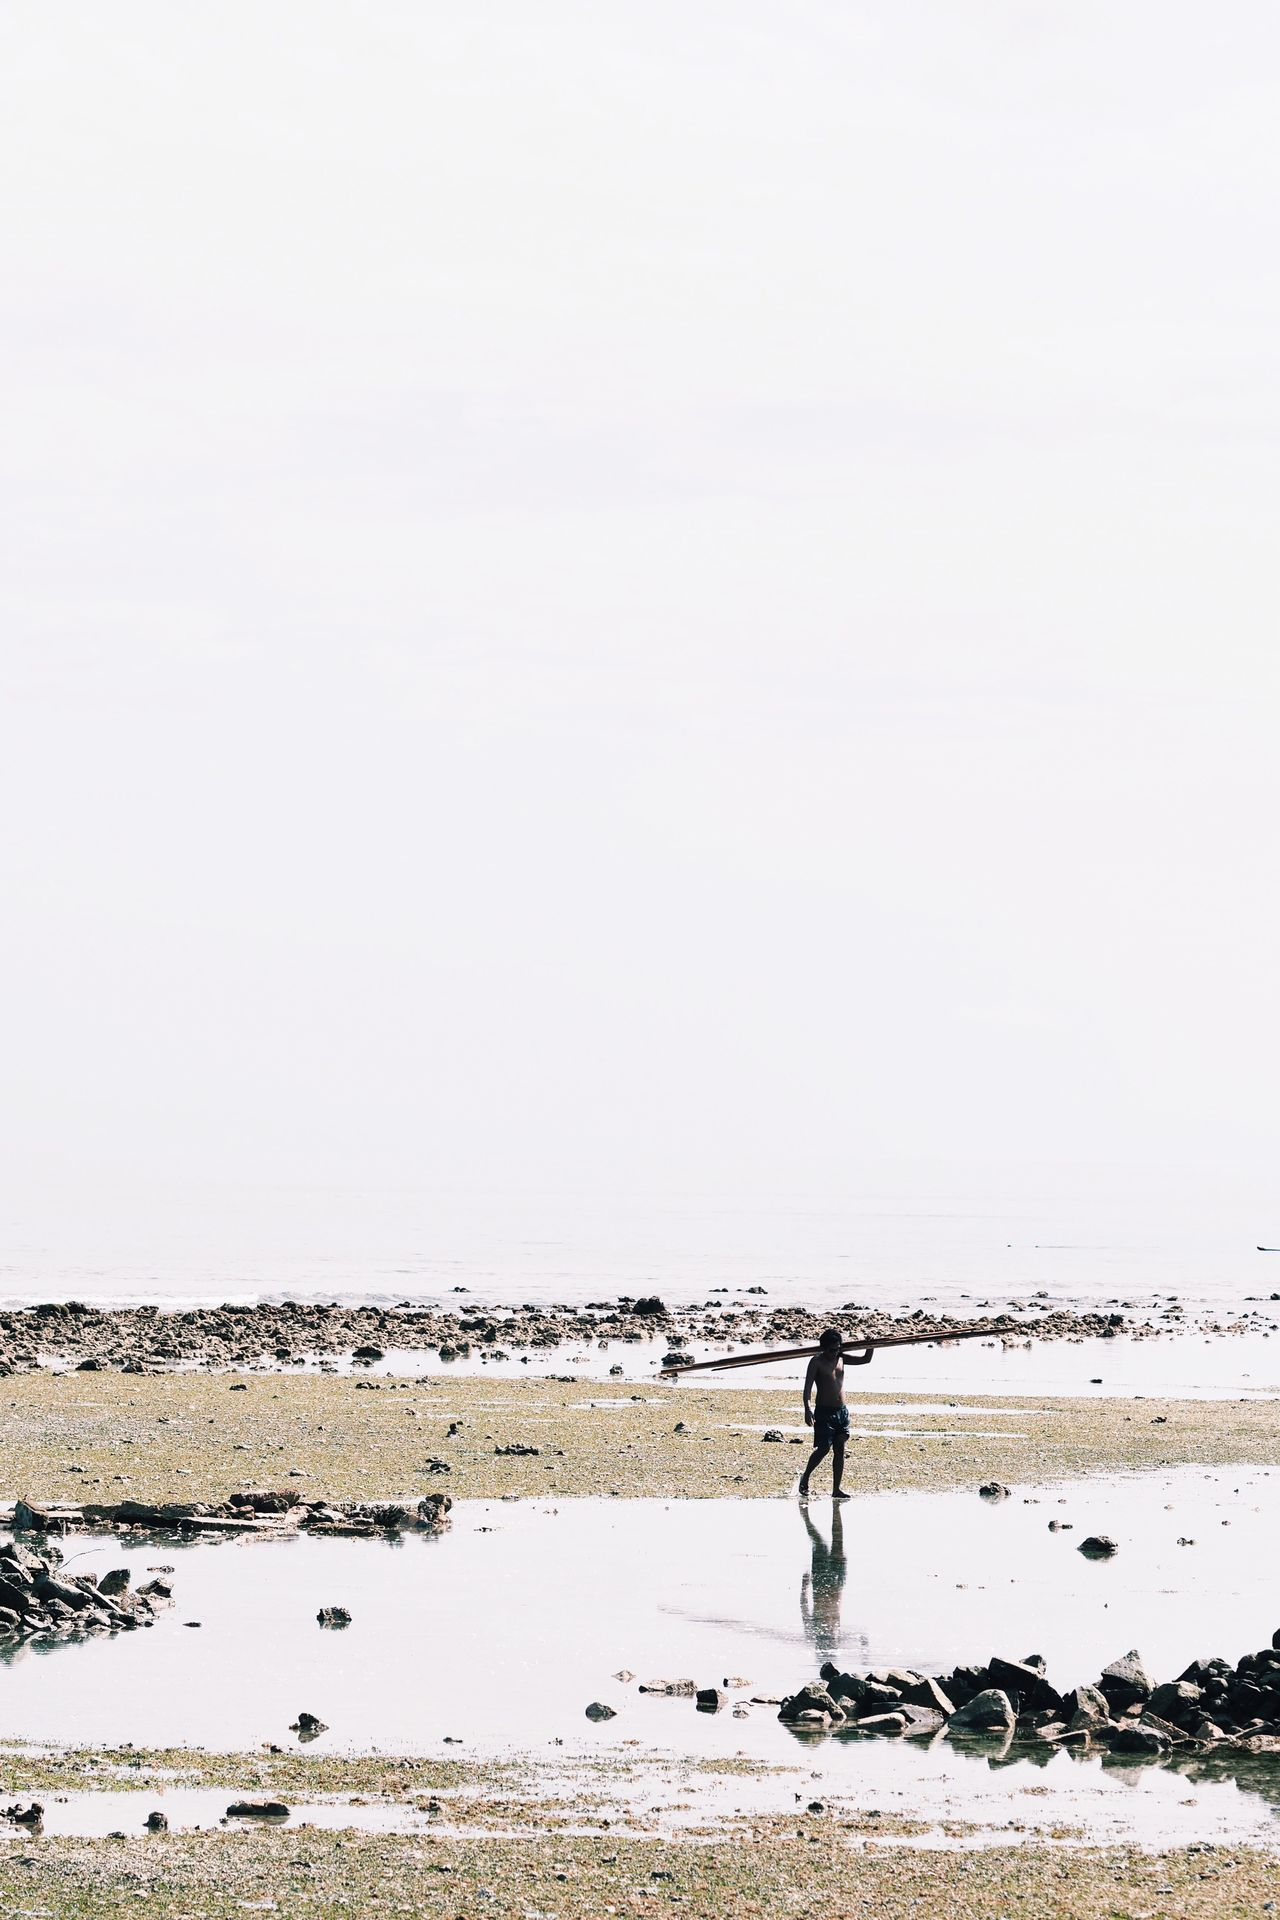 light and reflection Beach Water Sea Olympus INDONESIA ASIA Sky Minimal Landscape Travel Minimalist Minimalism Ocean Island Minimalobsession Gili Trawangan Olympus Pen-f Olympus Pen Olympusinspired Minimalist Photography  Minimalistic People Olympus Inspired Minimalmood